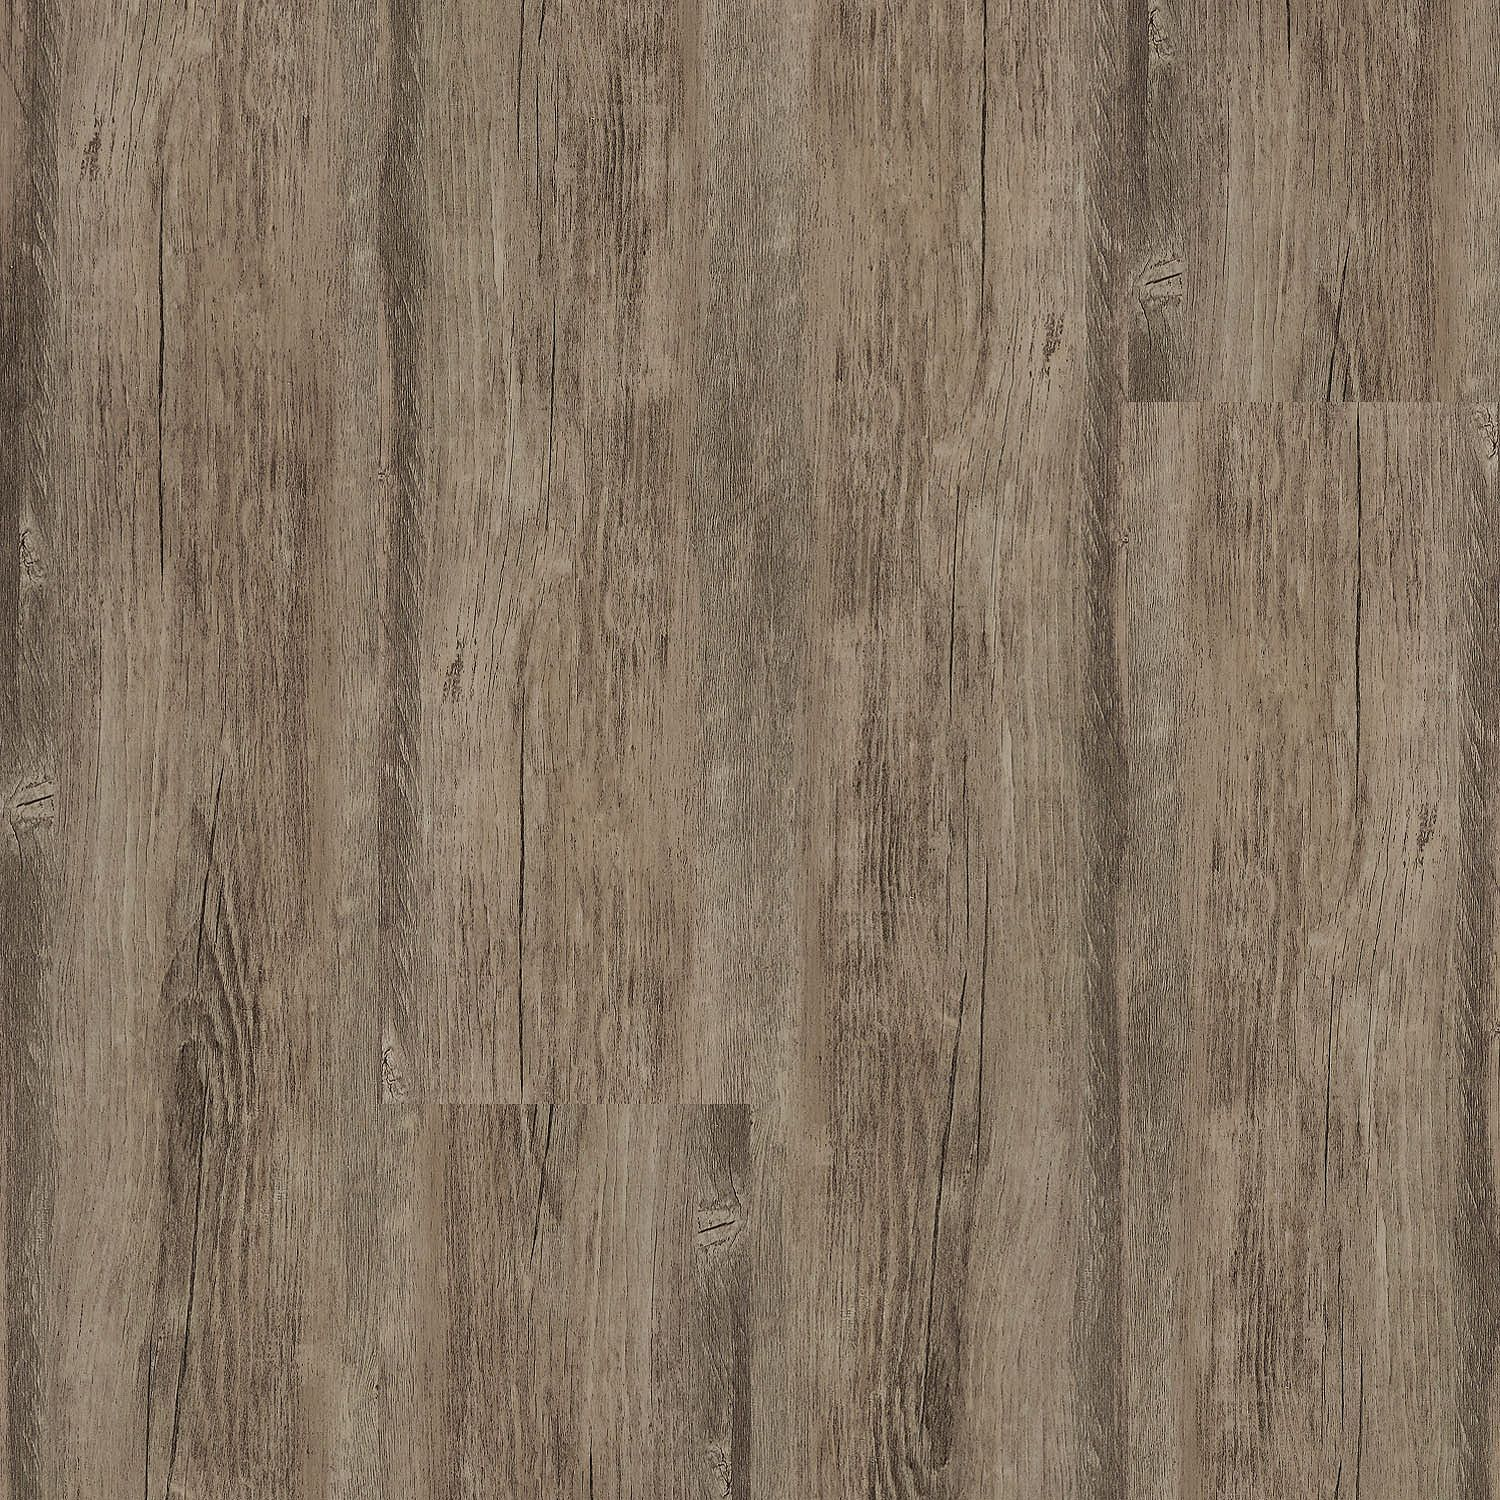 Select Surfaces Weathered Oak Premium Engineered Vinyl Plank   Samu0027s Club